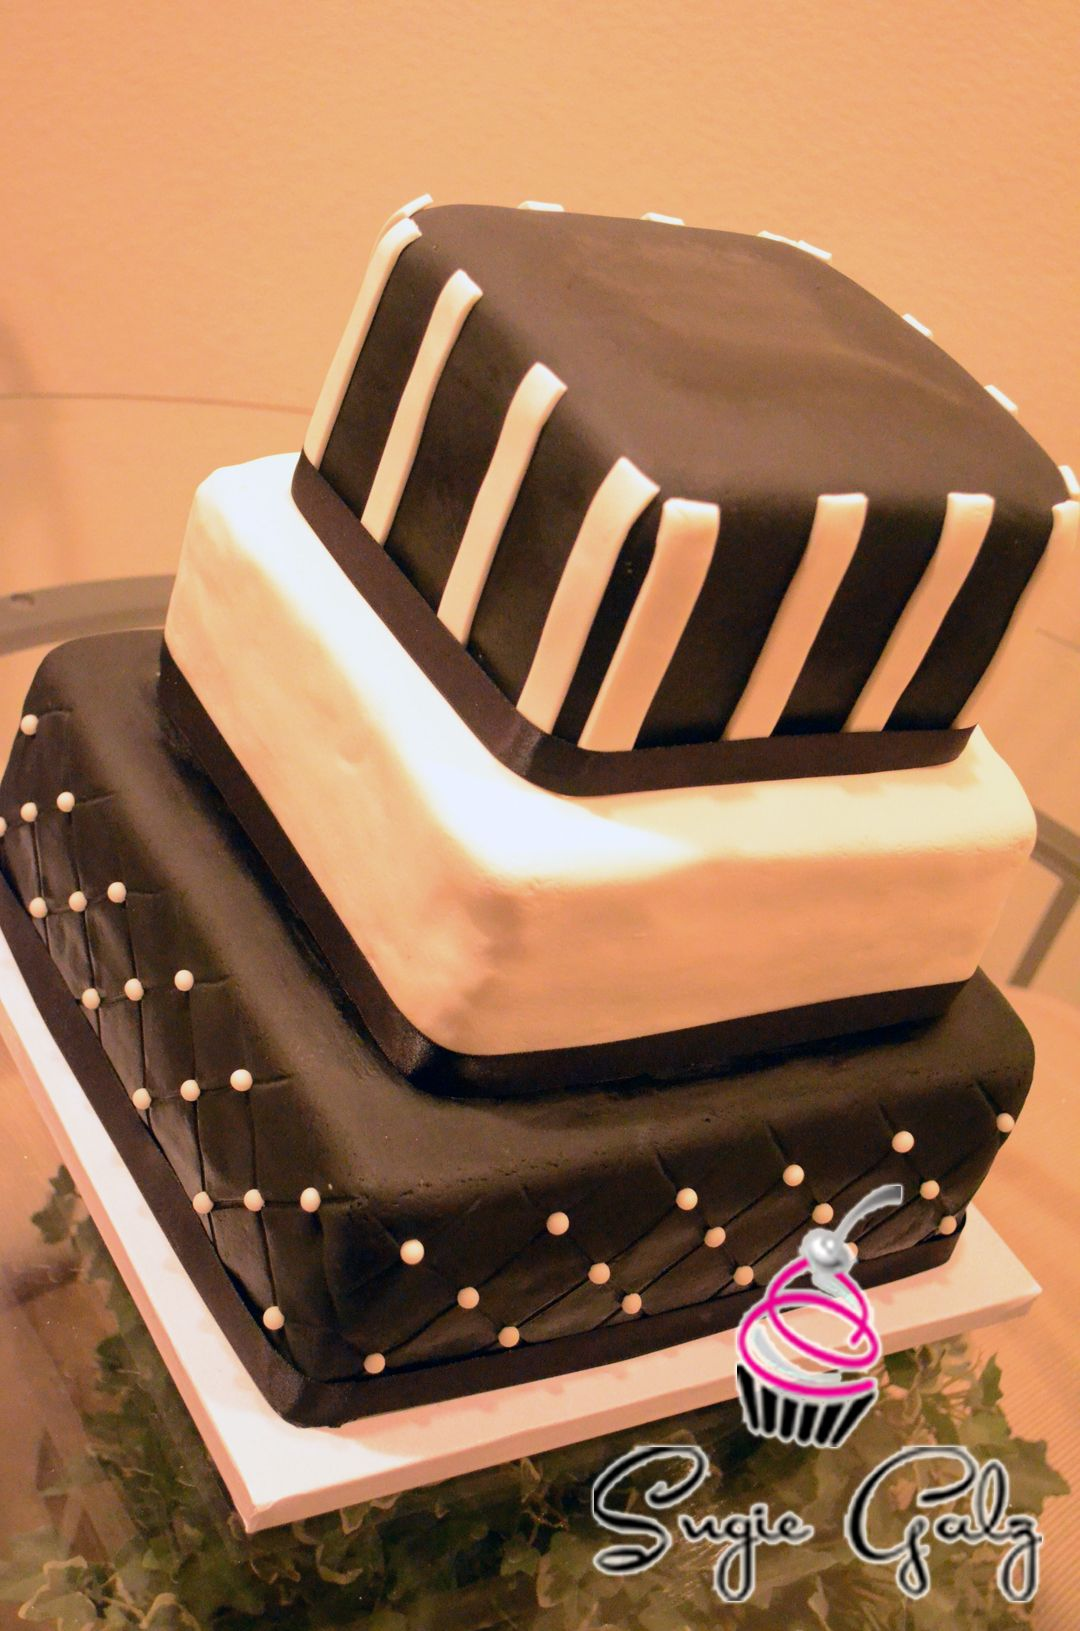 Black And White Birthday Cake By Sugie Galz In Austin Texas